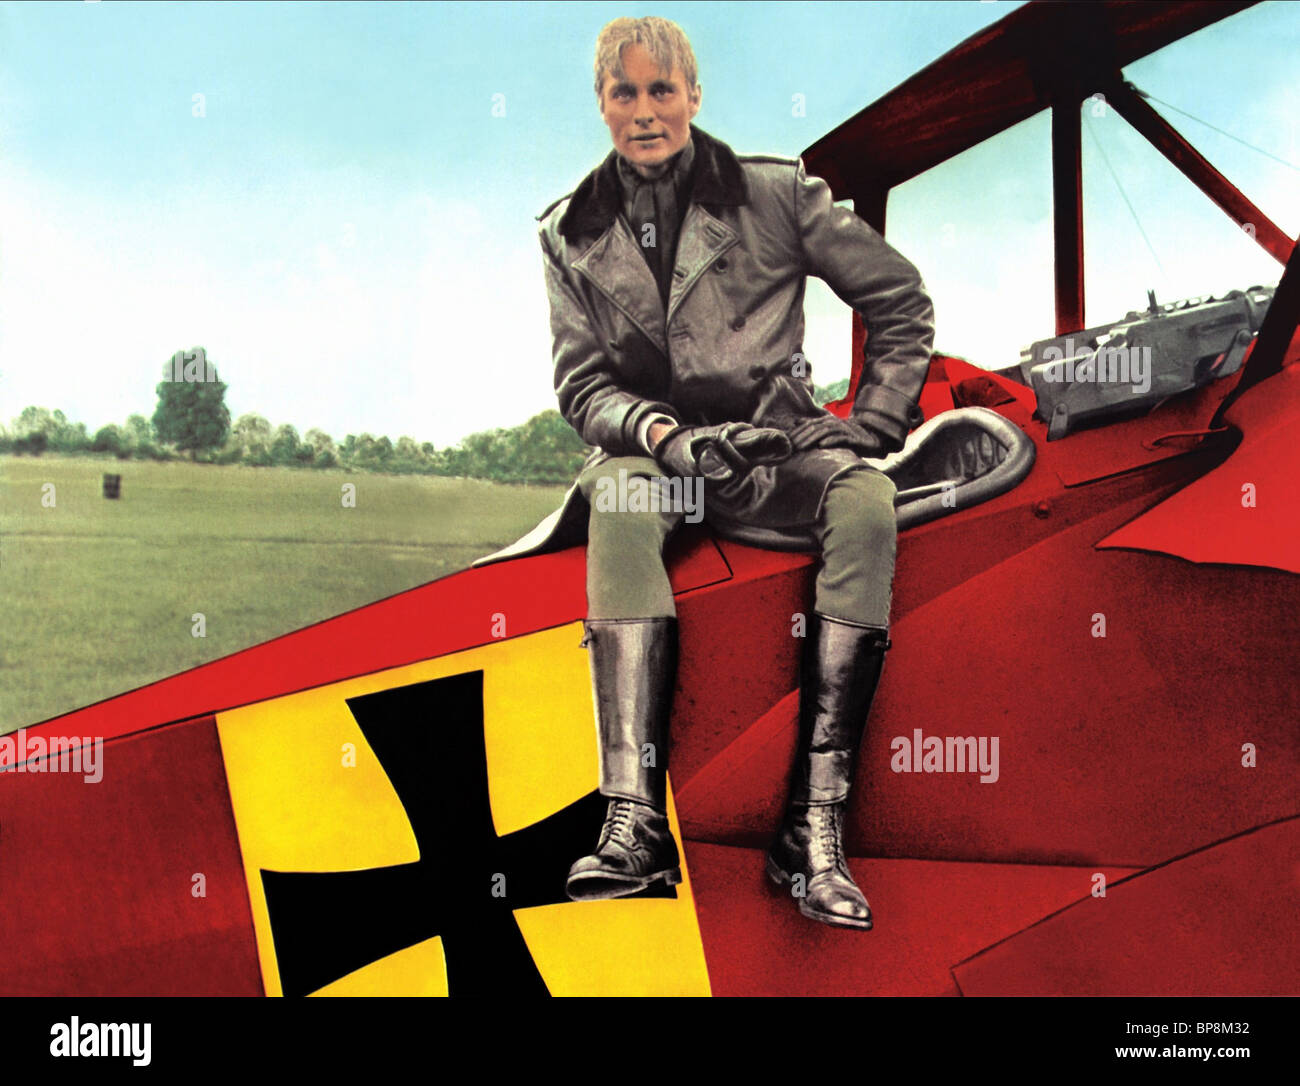 john phillip law the red baron 1971 stock photo royalty free image 30924182 alamy. Black Bedroom Furniture Sets. Home Design Ideas